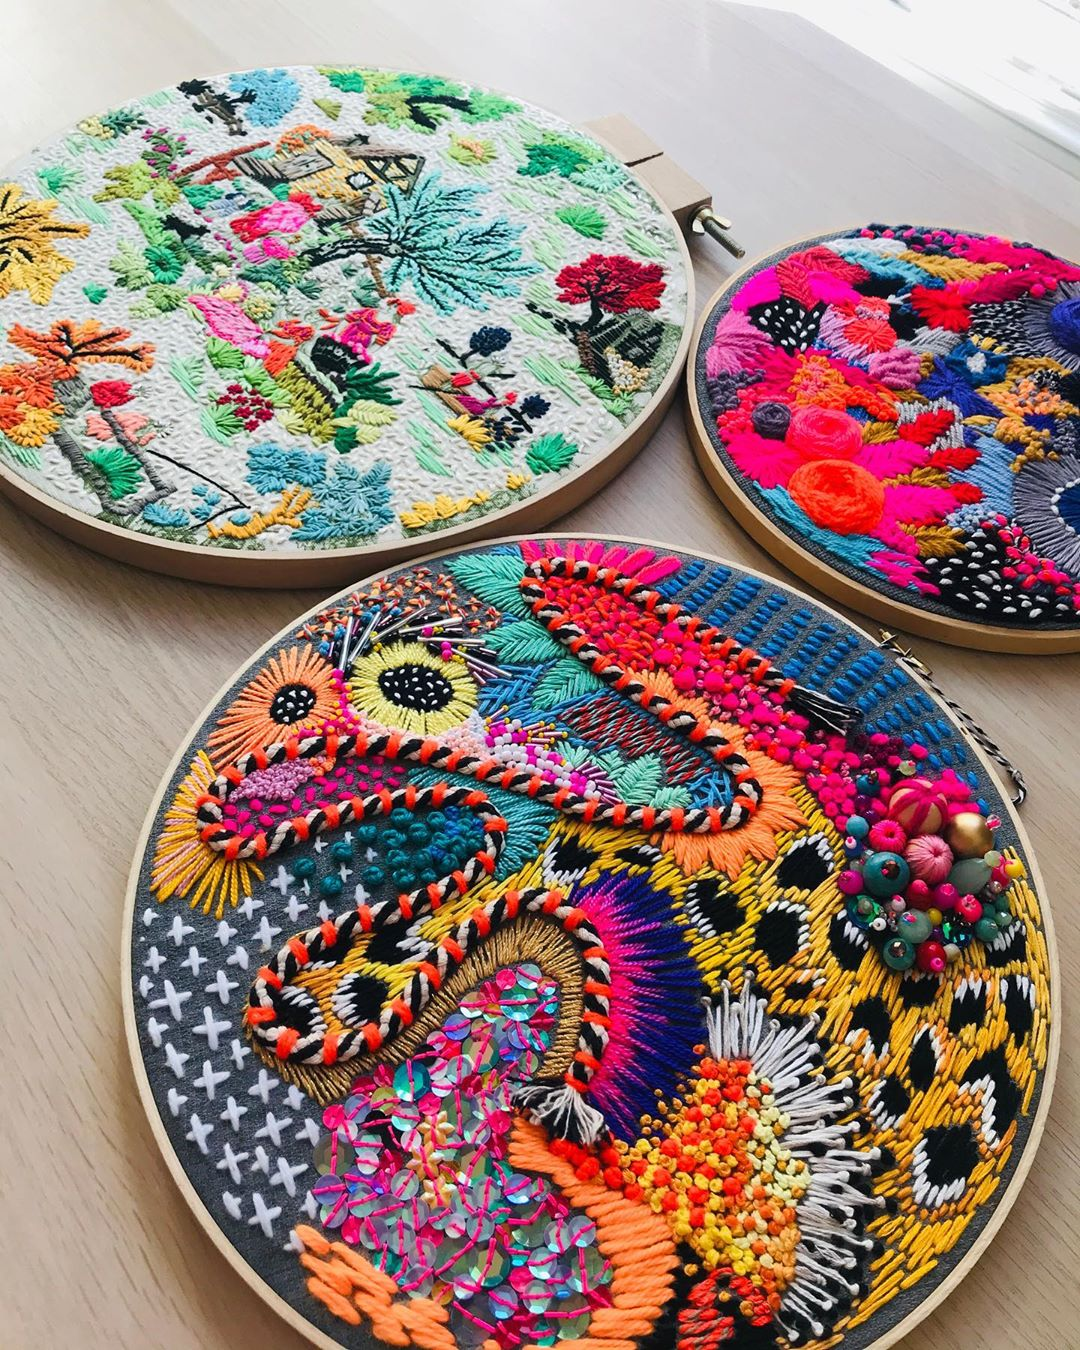 Hand embroidery art by Daniela Cermenati